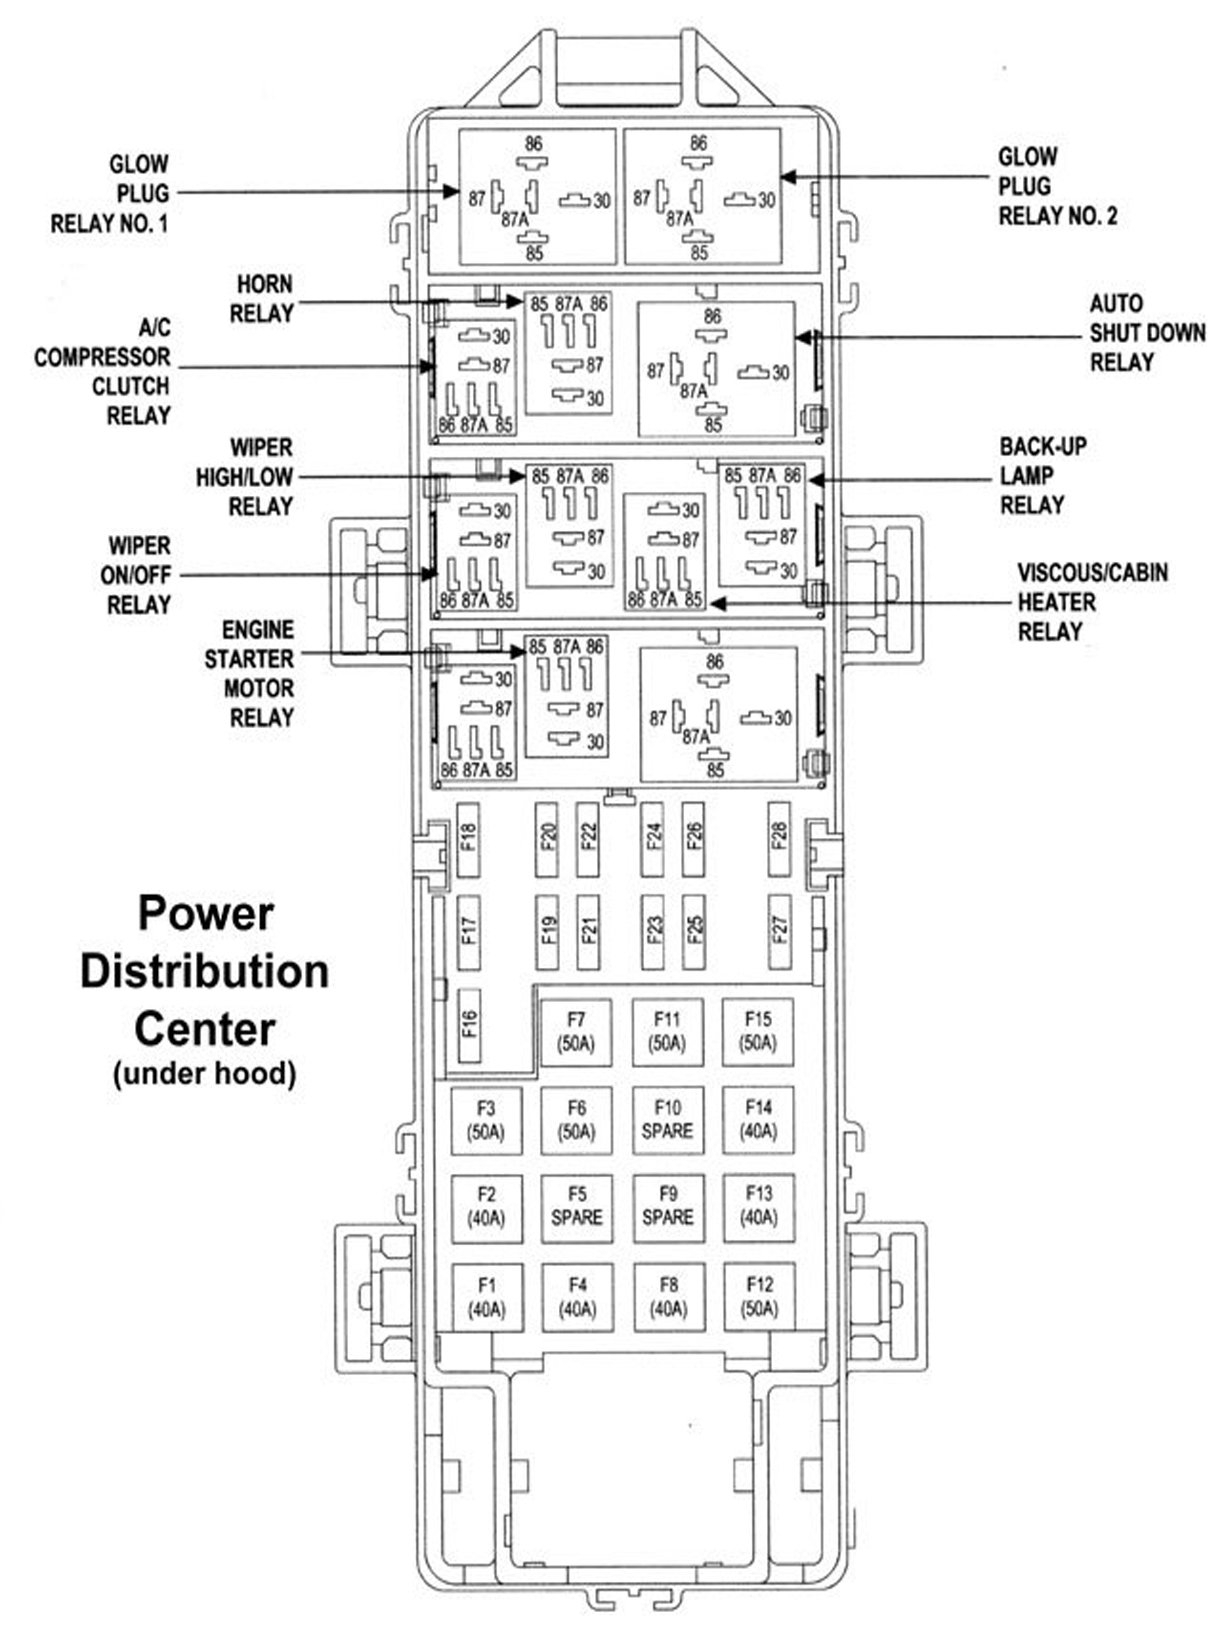 1998 Jeep Grand Cherokee Zj Fuse Box Diagram | Wiring ...